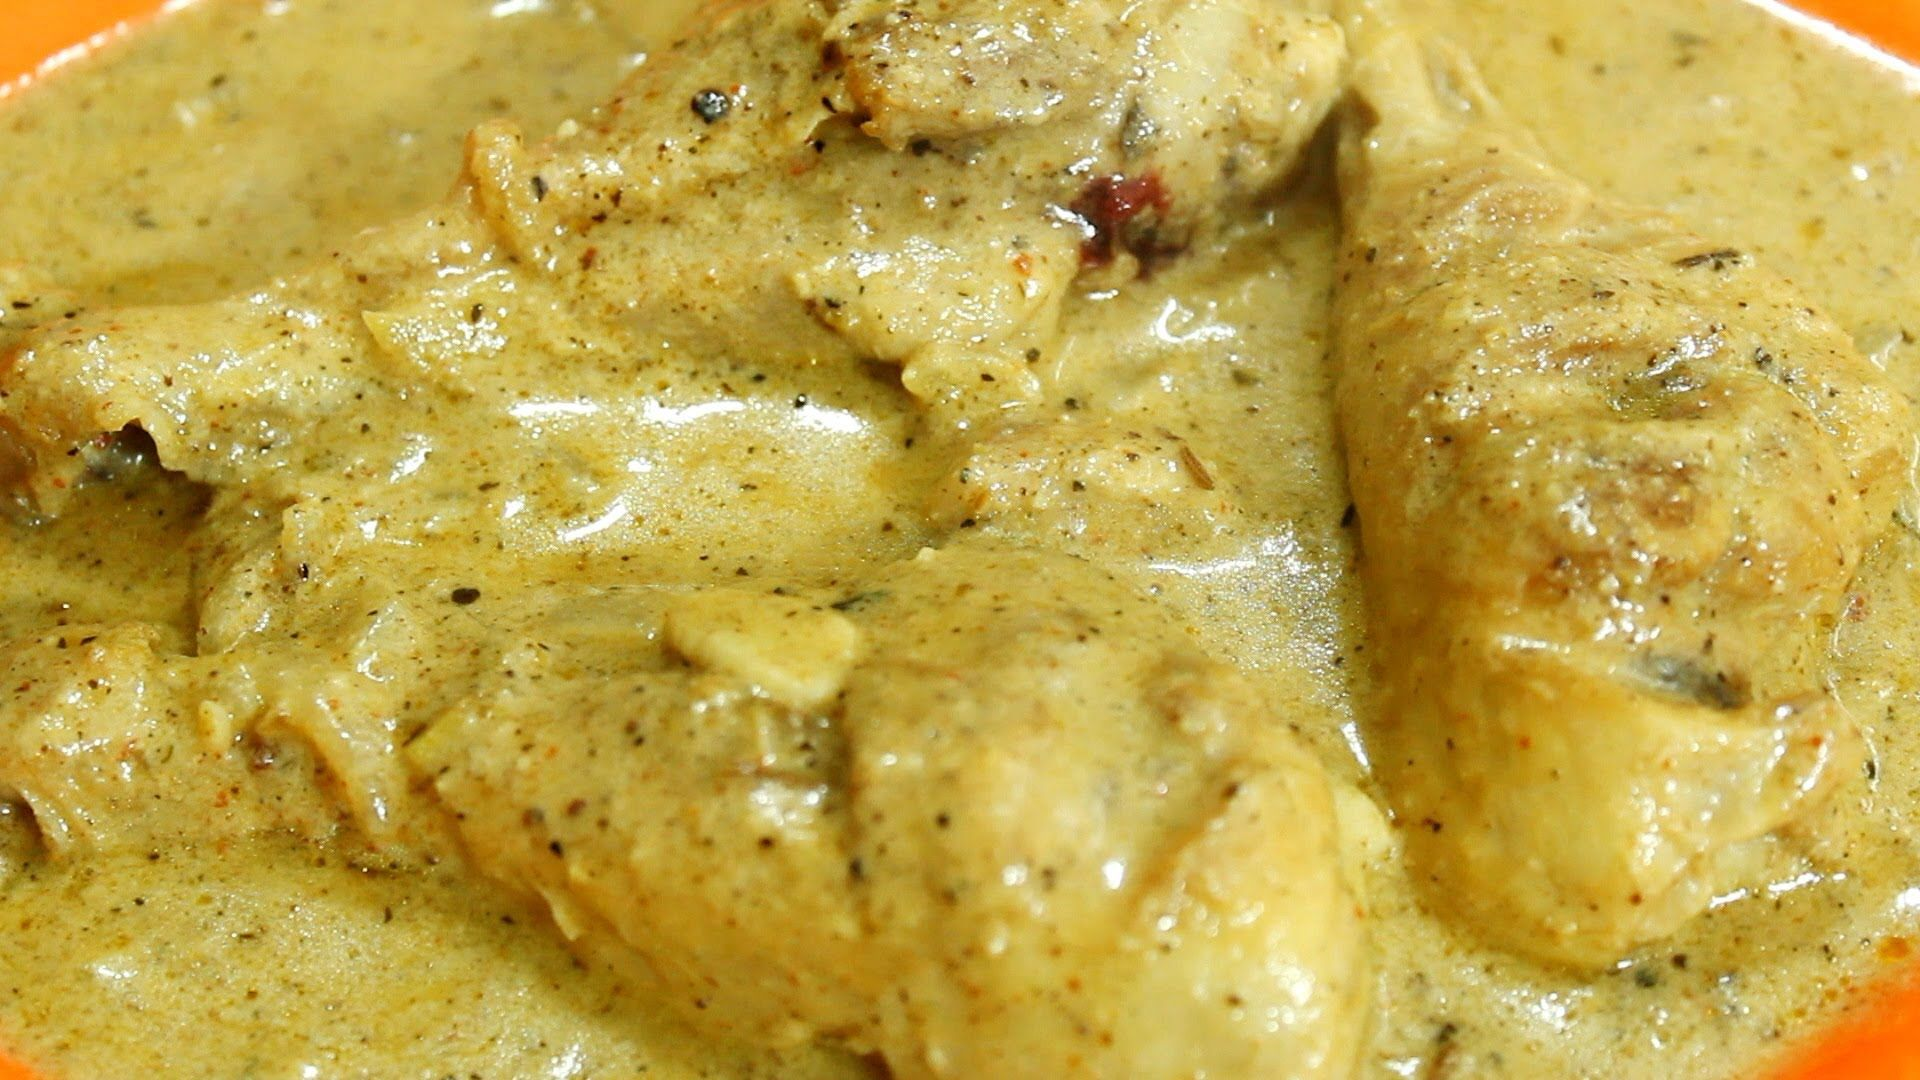 Mughlai chicken easy cook with food mughlai chicken easy cook with food junction forumfinder Choice Image